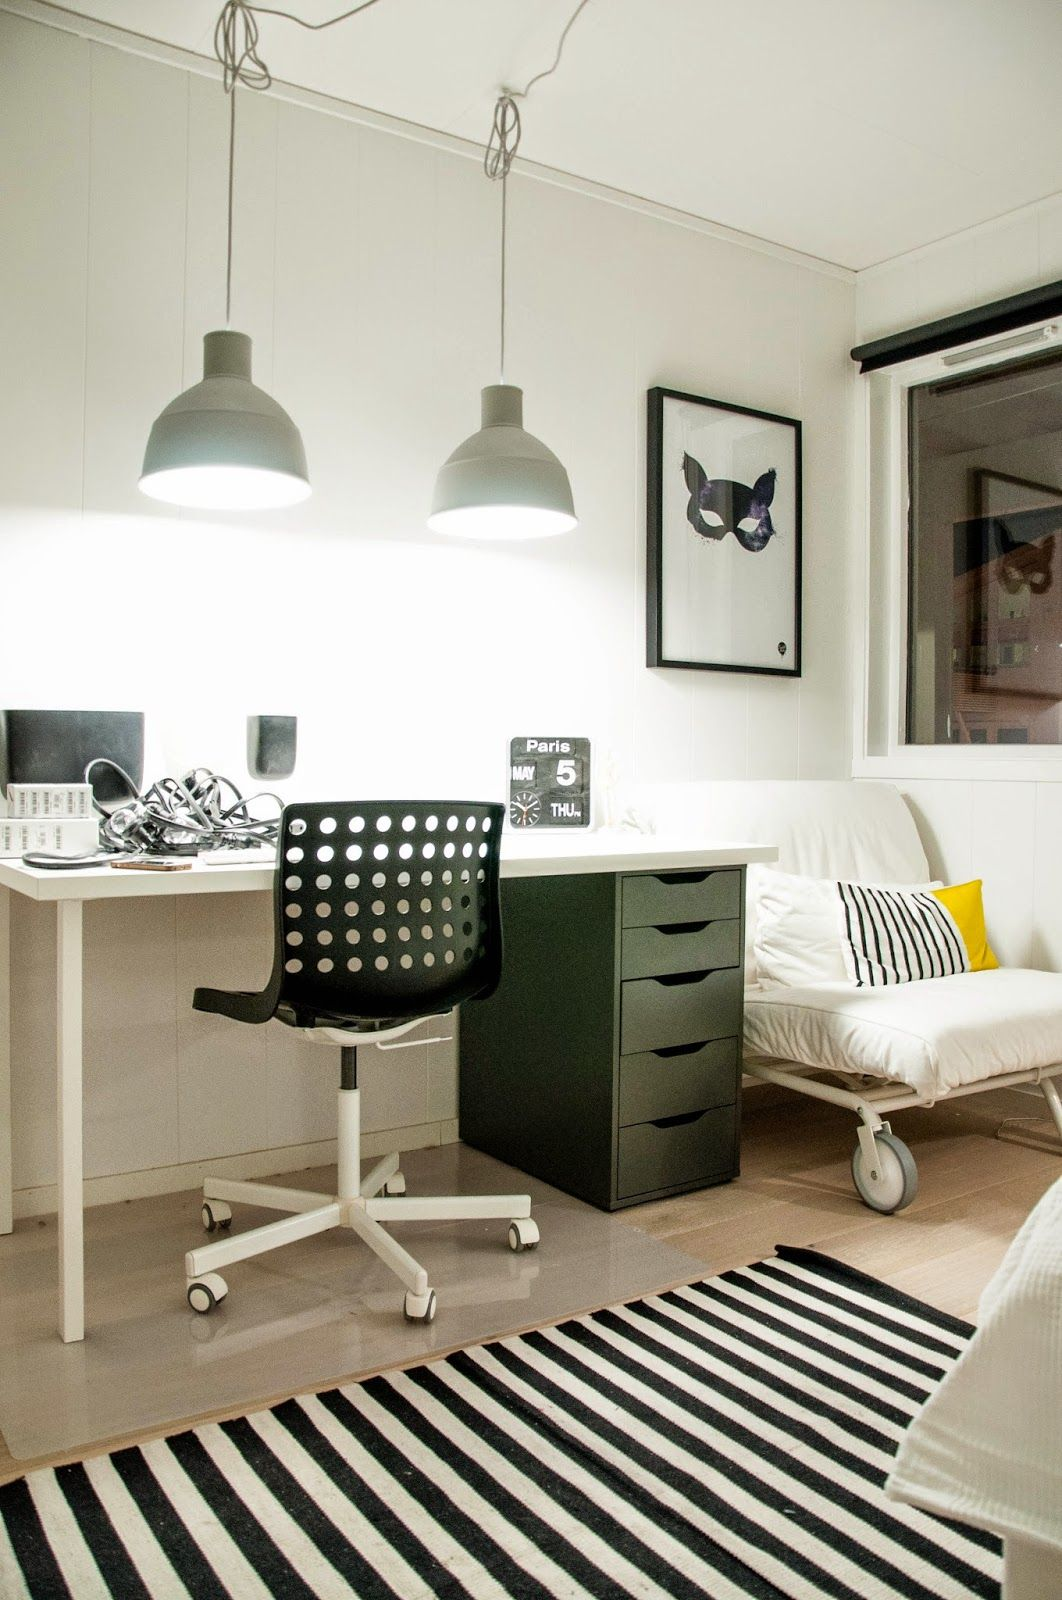 Muuto unfold pendant lights (With images)   Decor, Home